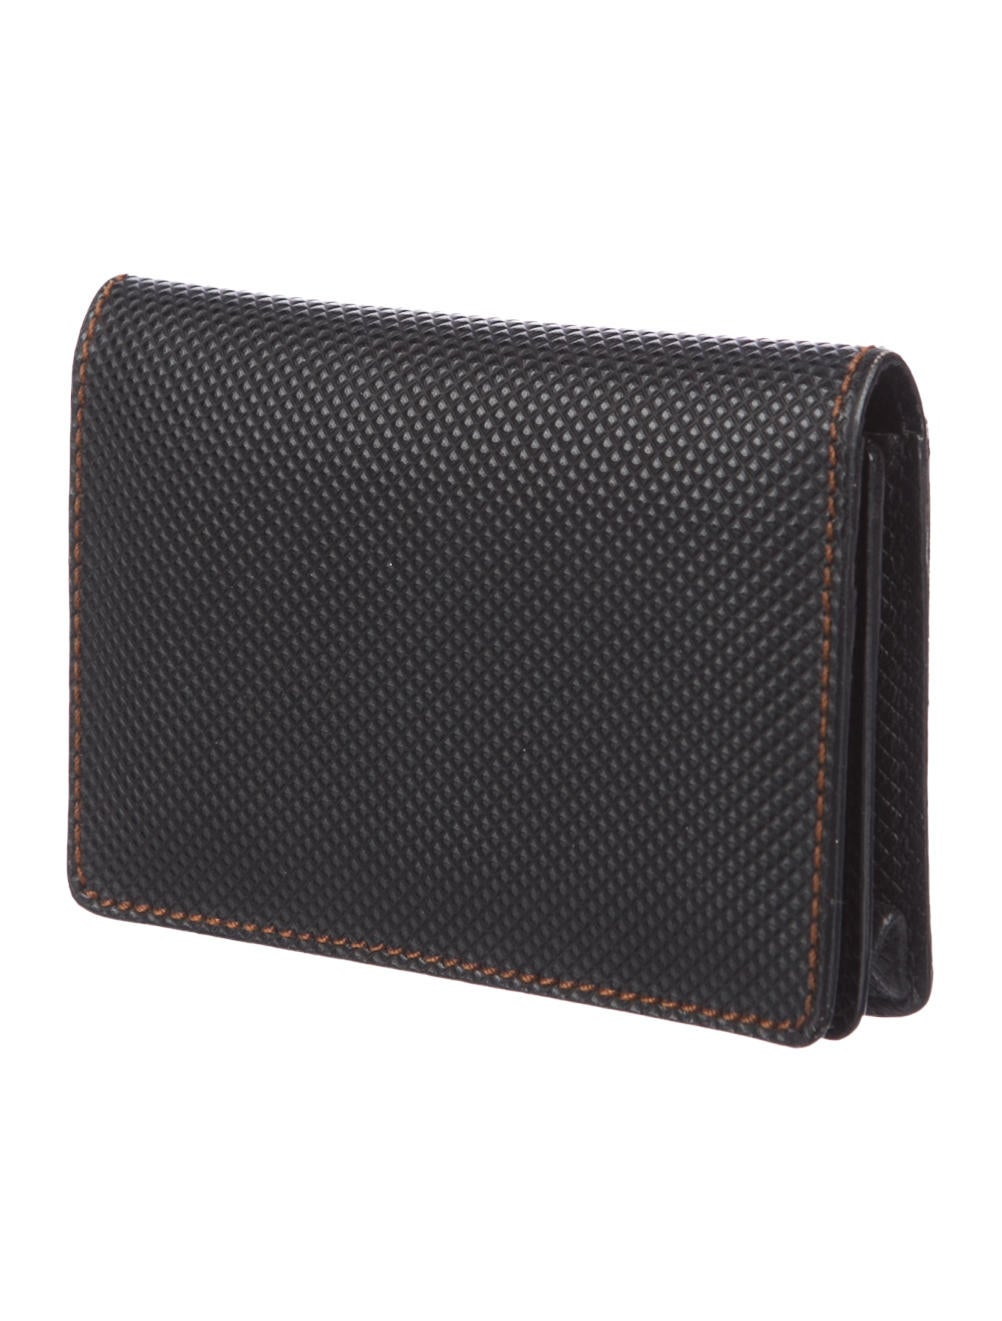 Bottega Veneta Business Card Holder - Accessories - BOT51350 | The ...